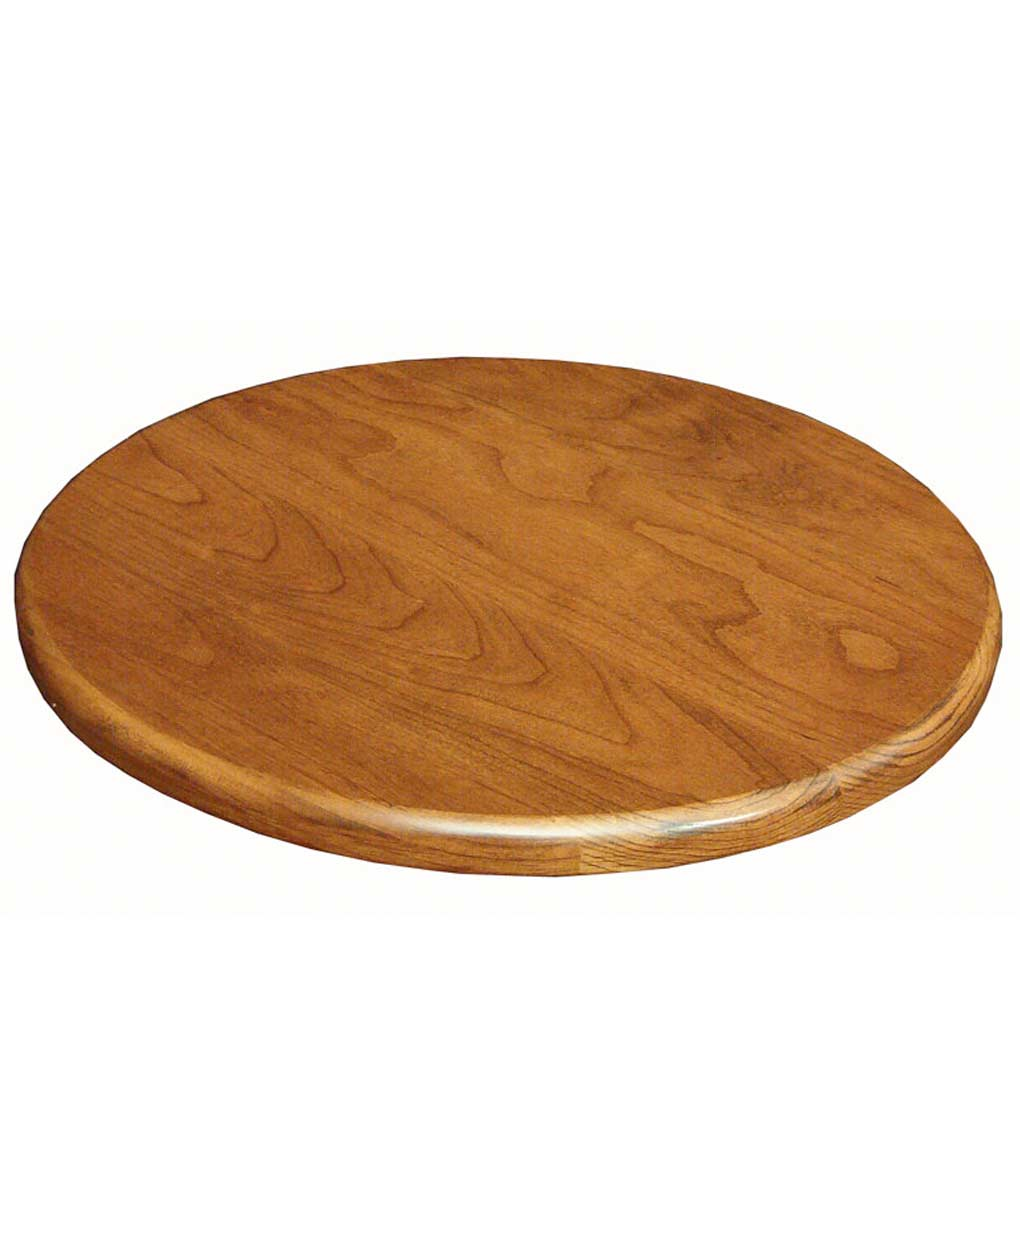 oak kitchen table and chairs used lazy susan without rails - amish direct furniture